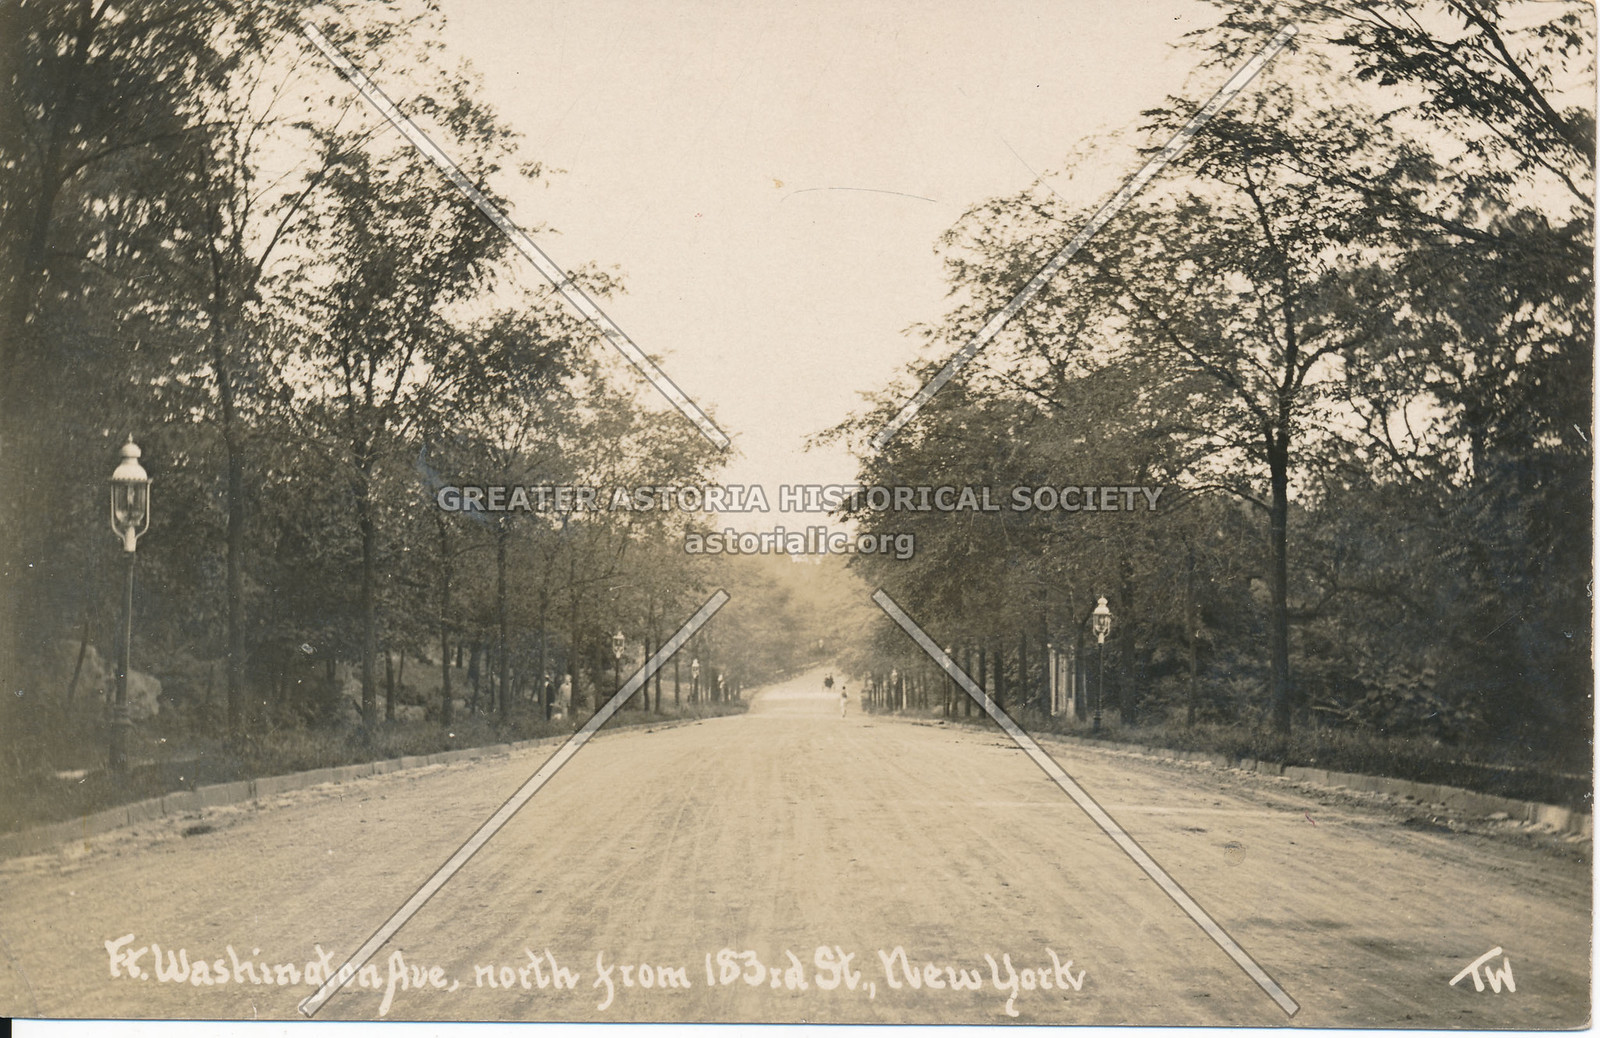 Fort Washington Ave, North from 183rd St., N.Y.